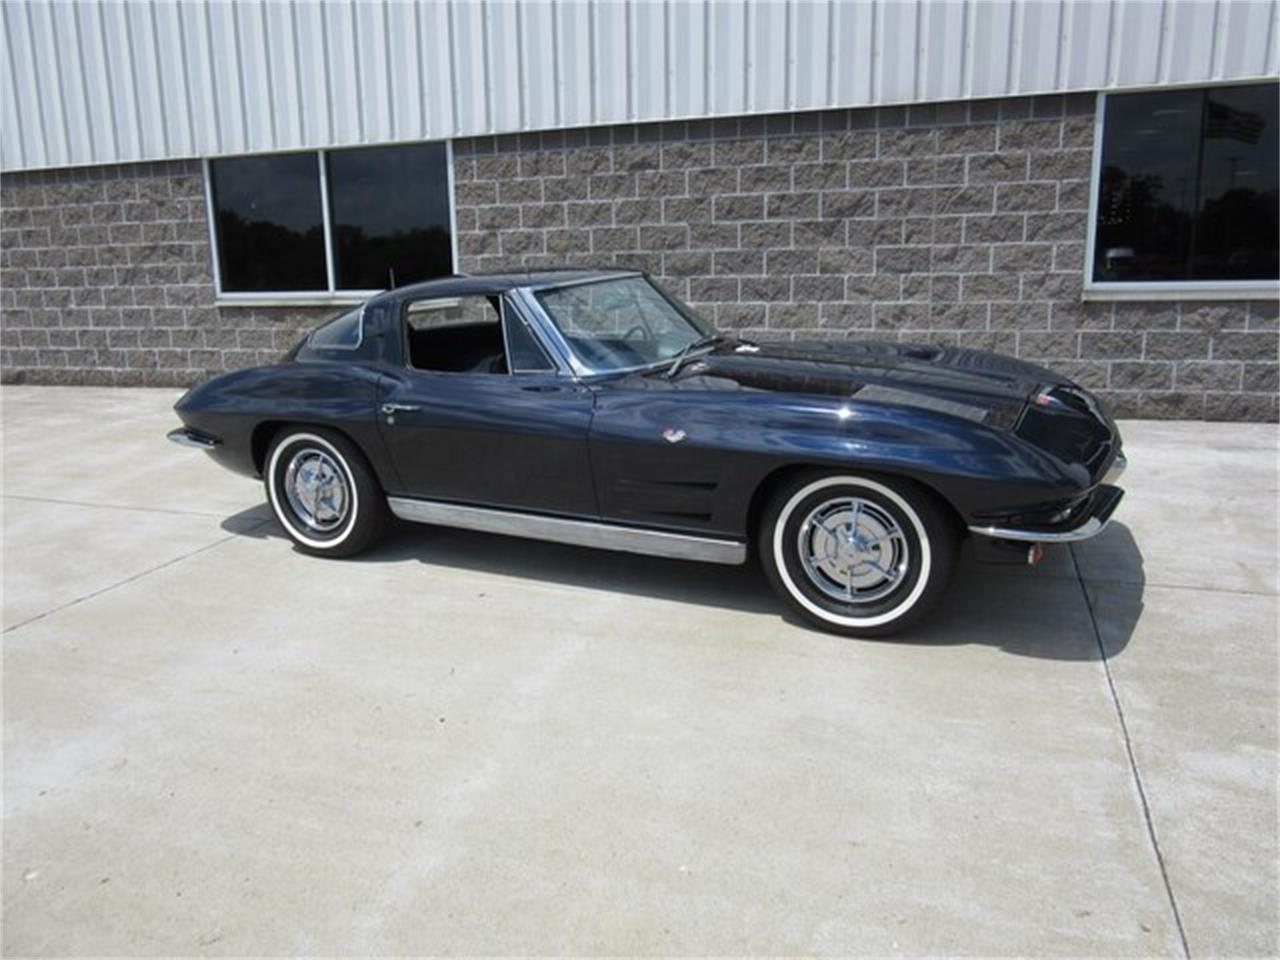 Large Picture of Classic 1963 Corvette - $119,000.00 Offered by Ray Skillman Classic Cars - QKZR